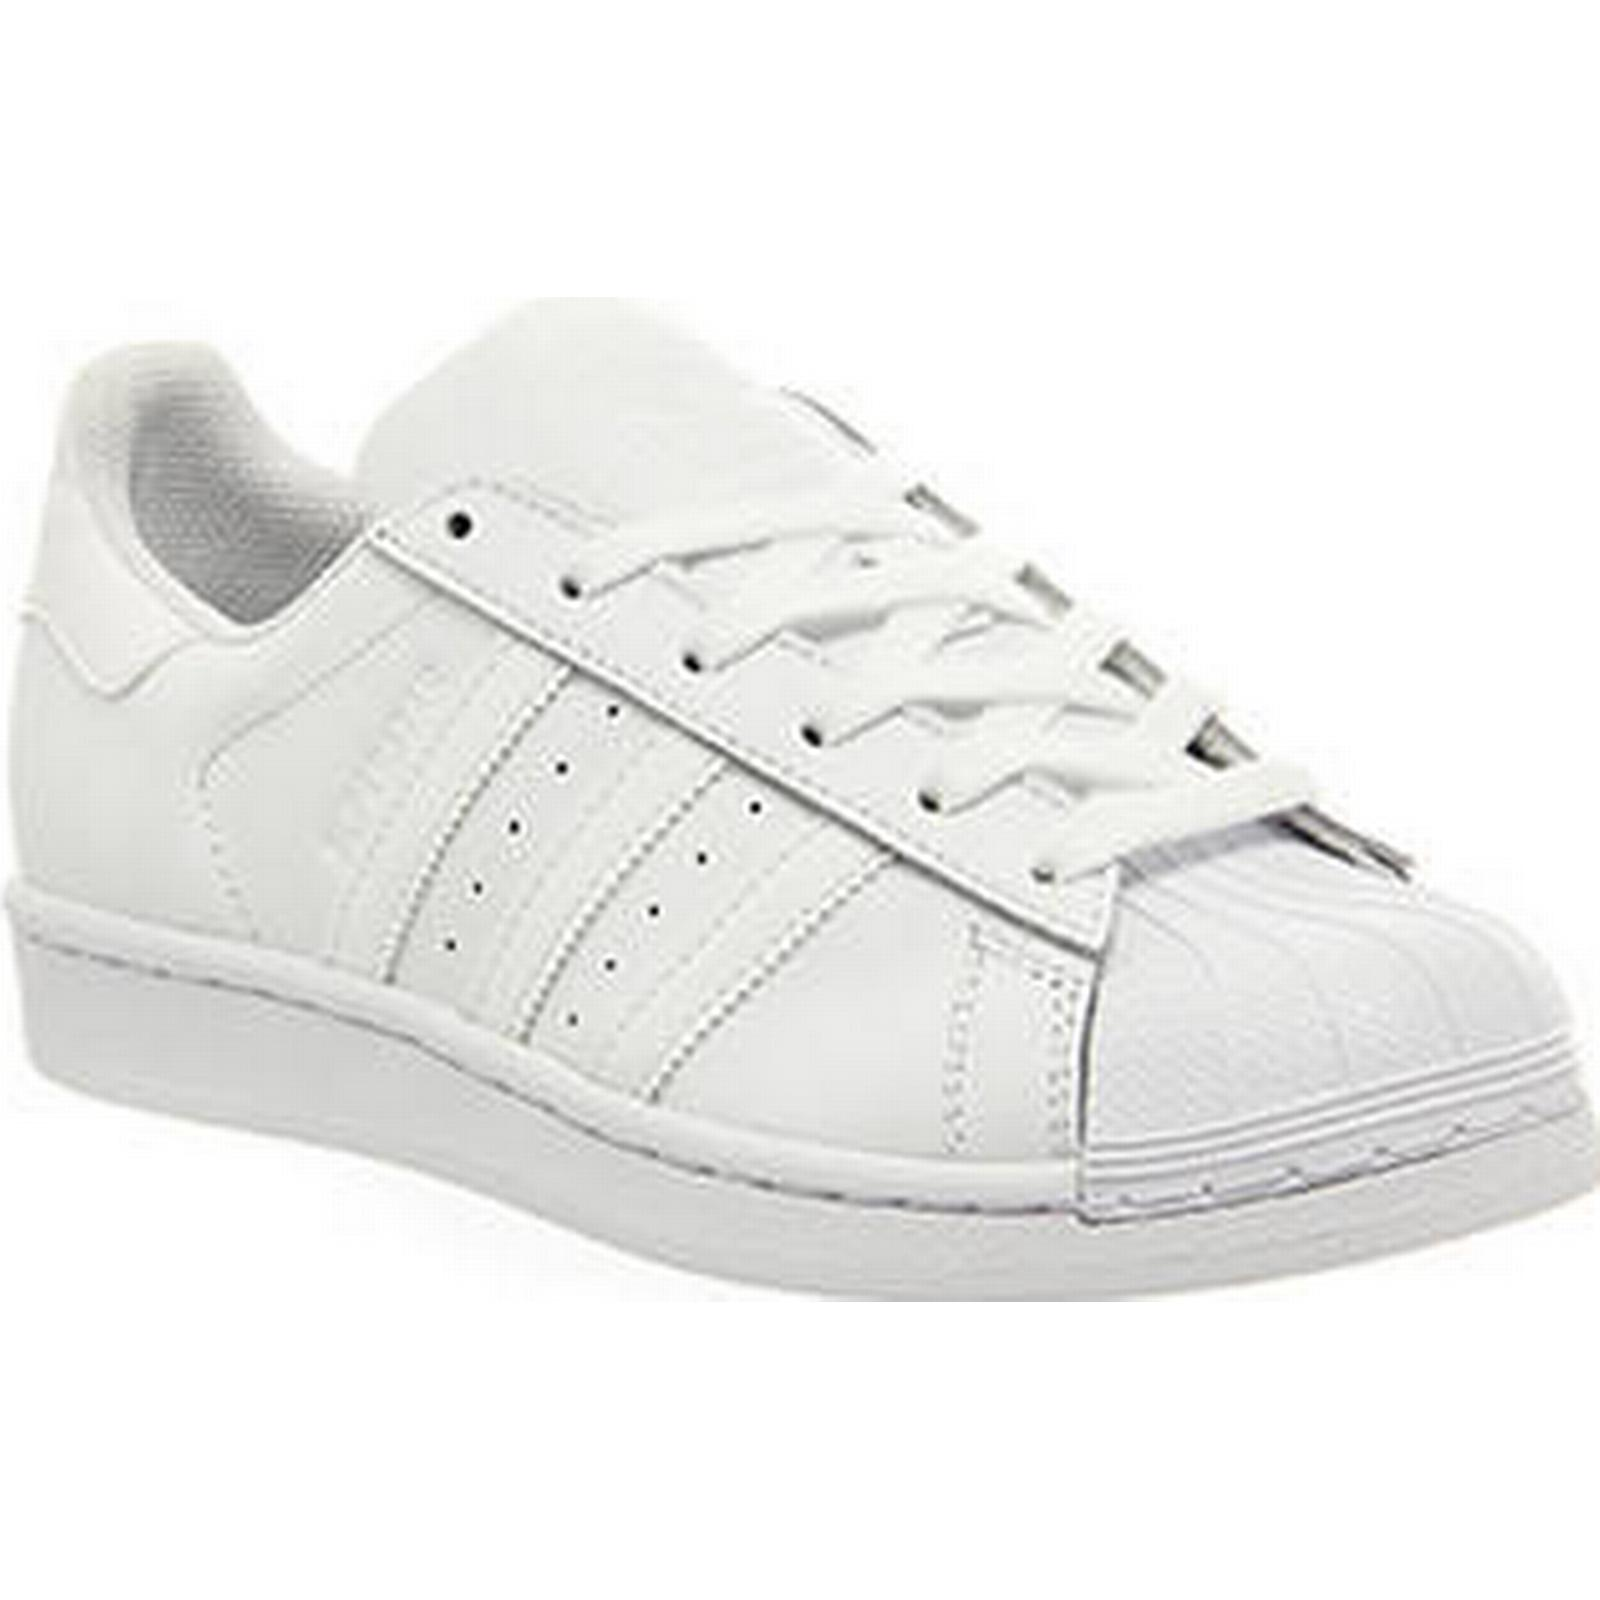 Adidas Superstar Superstar Adidas 1 WHITE MONO FOUNDATION e611d5